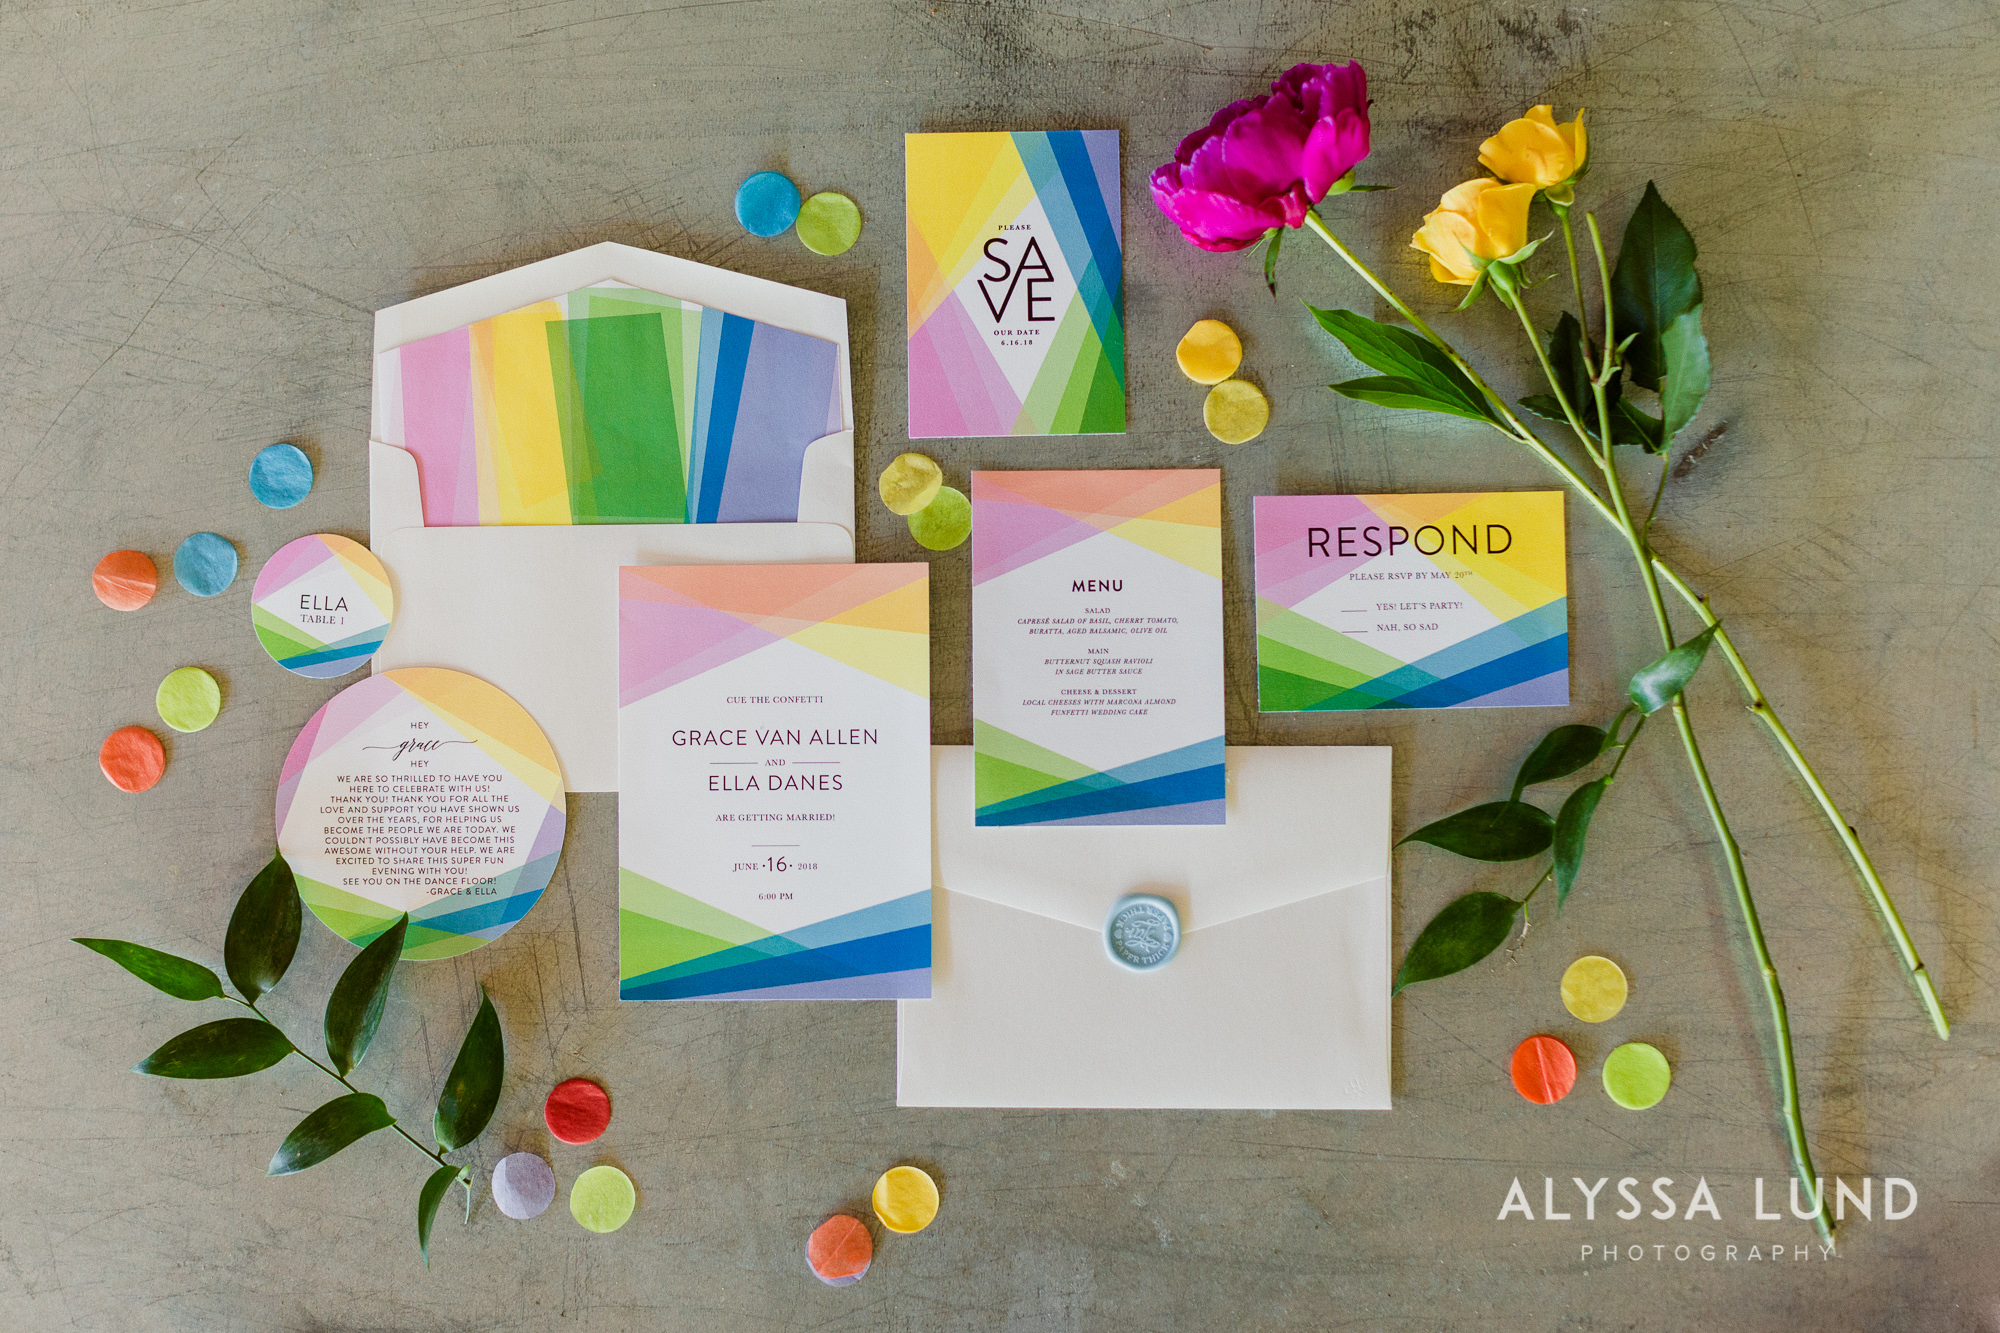 Queer wedding photography inspiration by Alyssa Lund Photography-03.jpg